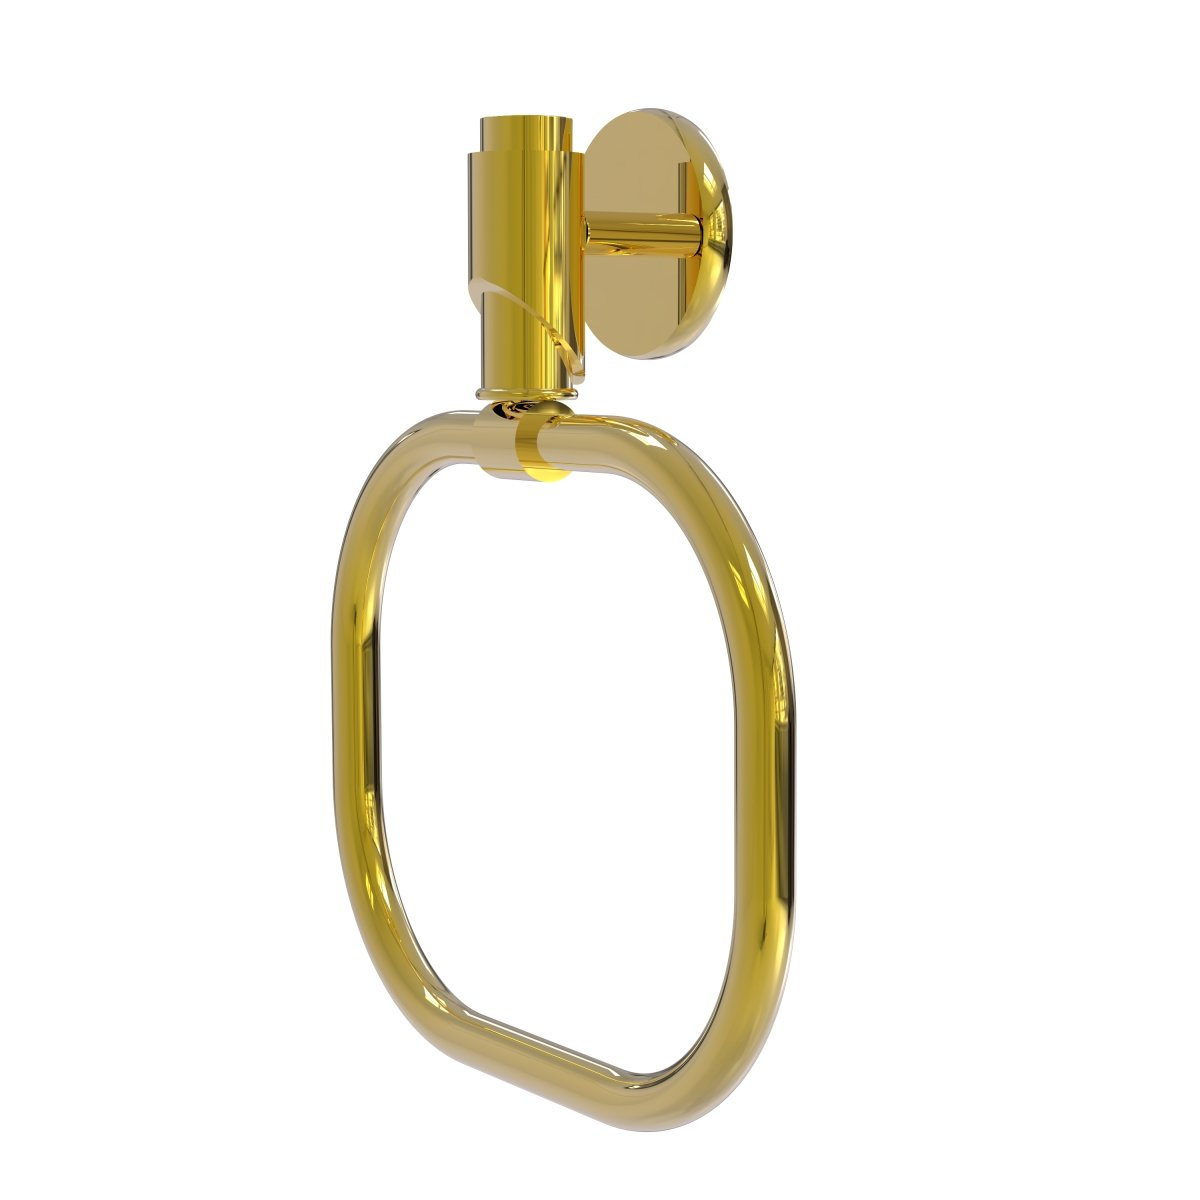 (Unlacquered Brass) TR-16-UNL Tribecca Collection Towel Ring, Unlacquered Brass B06X9YQGH5 ラッカーなし真鍮 ラッカーなし真鍮